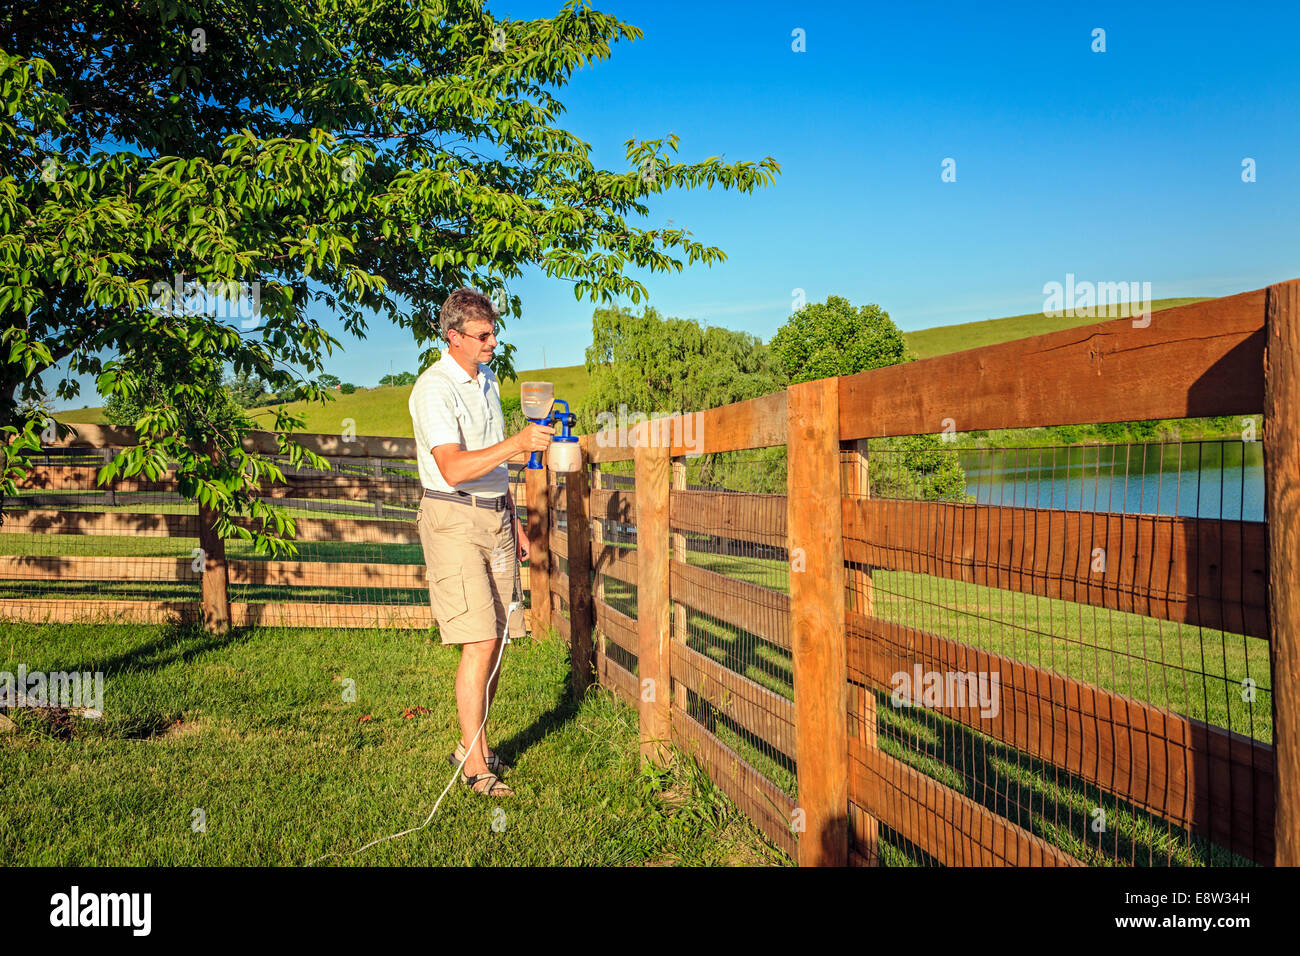 A man is staining wooden fence - Stock Image